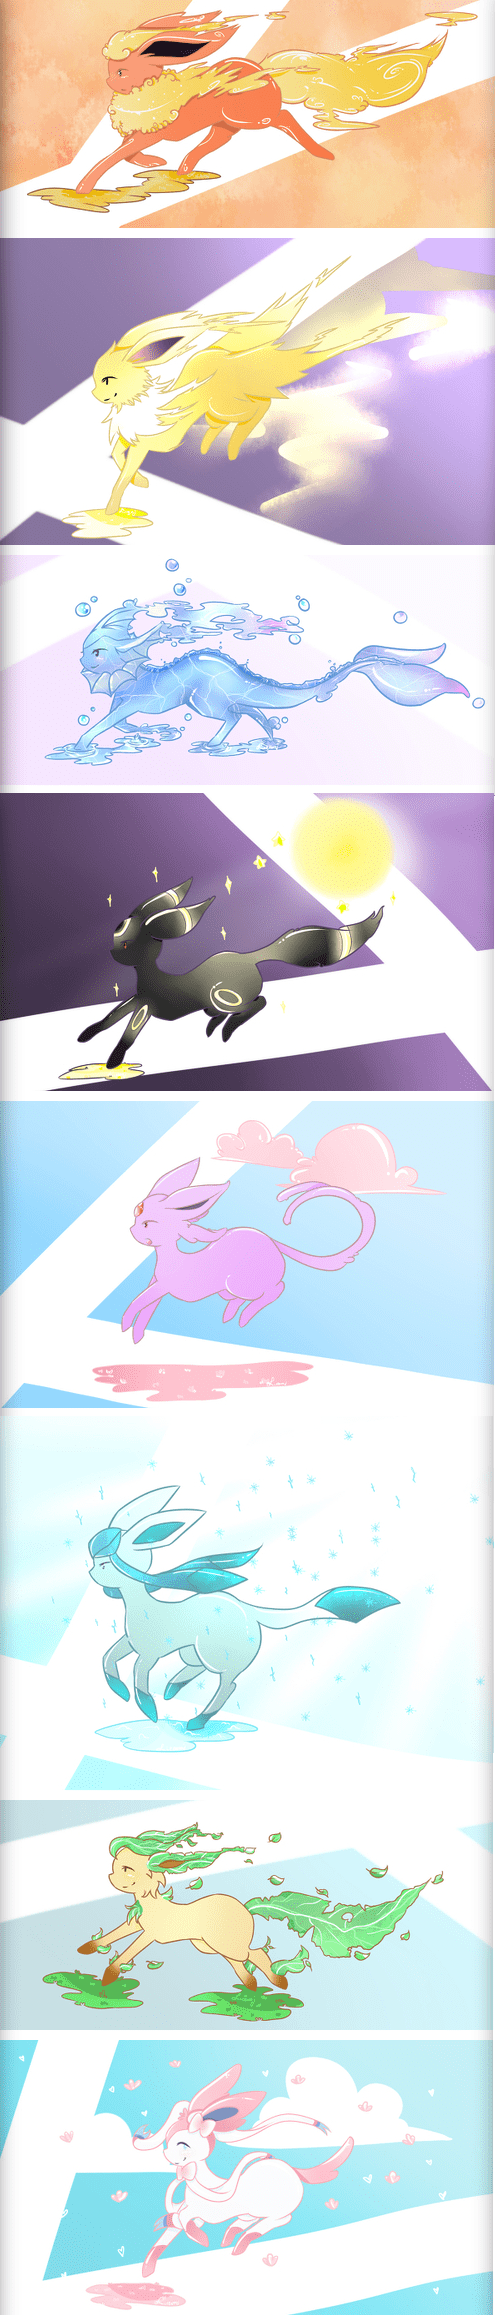 eeveelutions,Fan Art